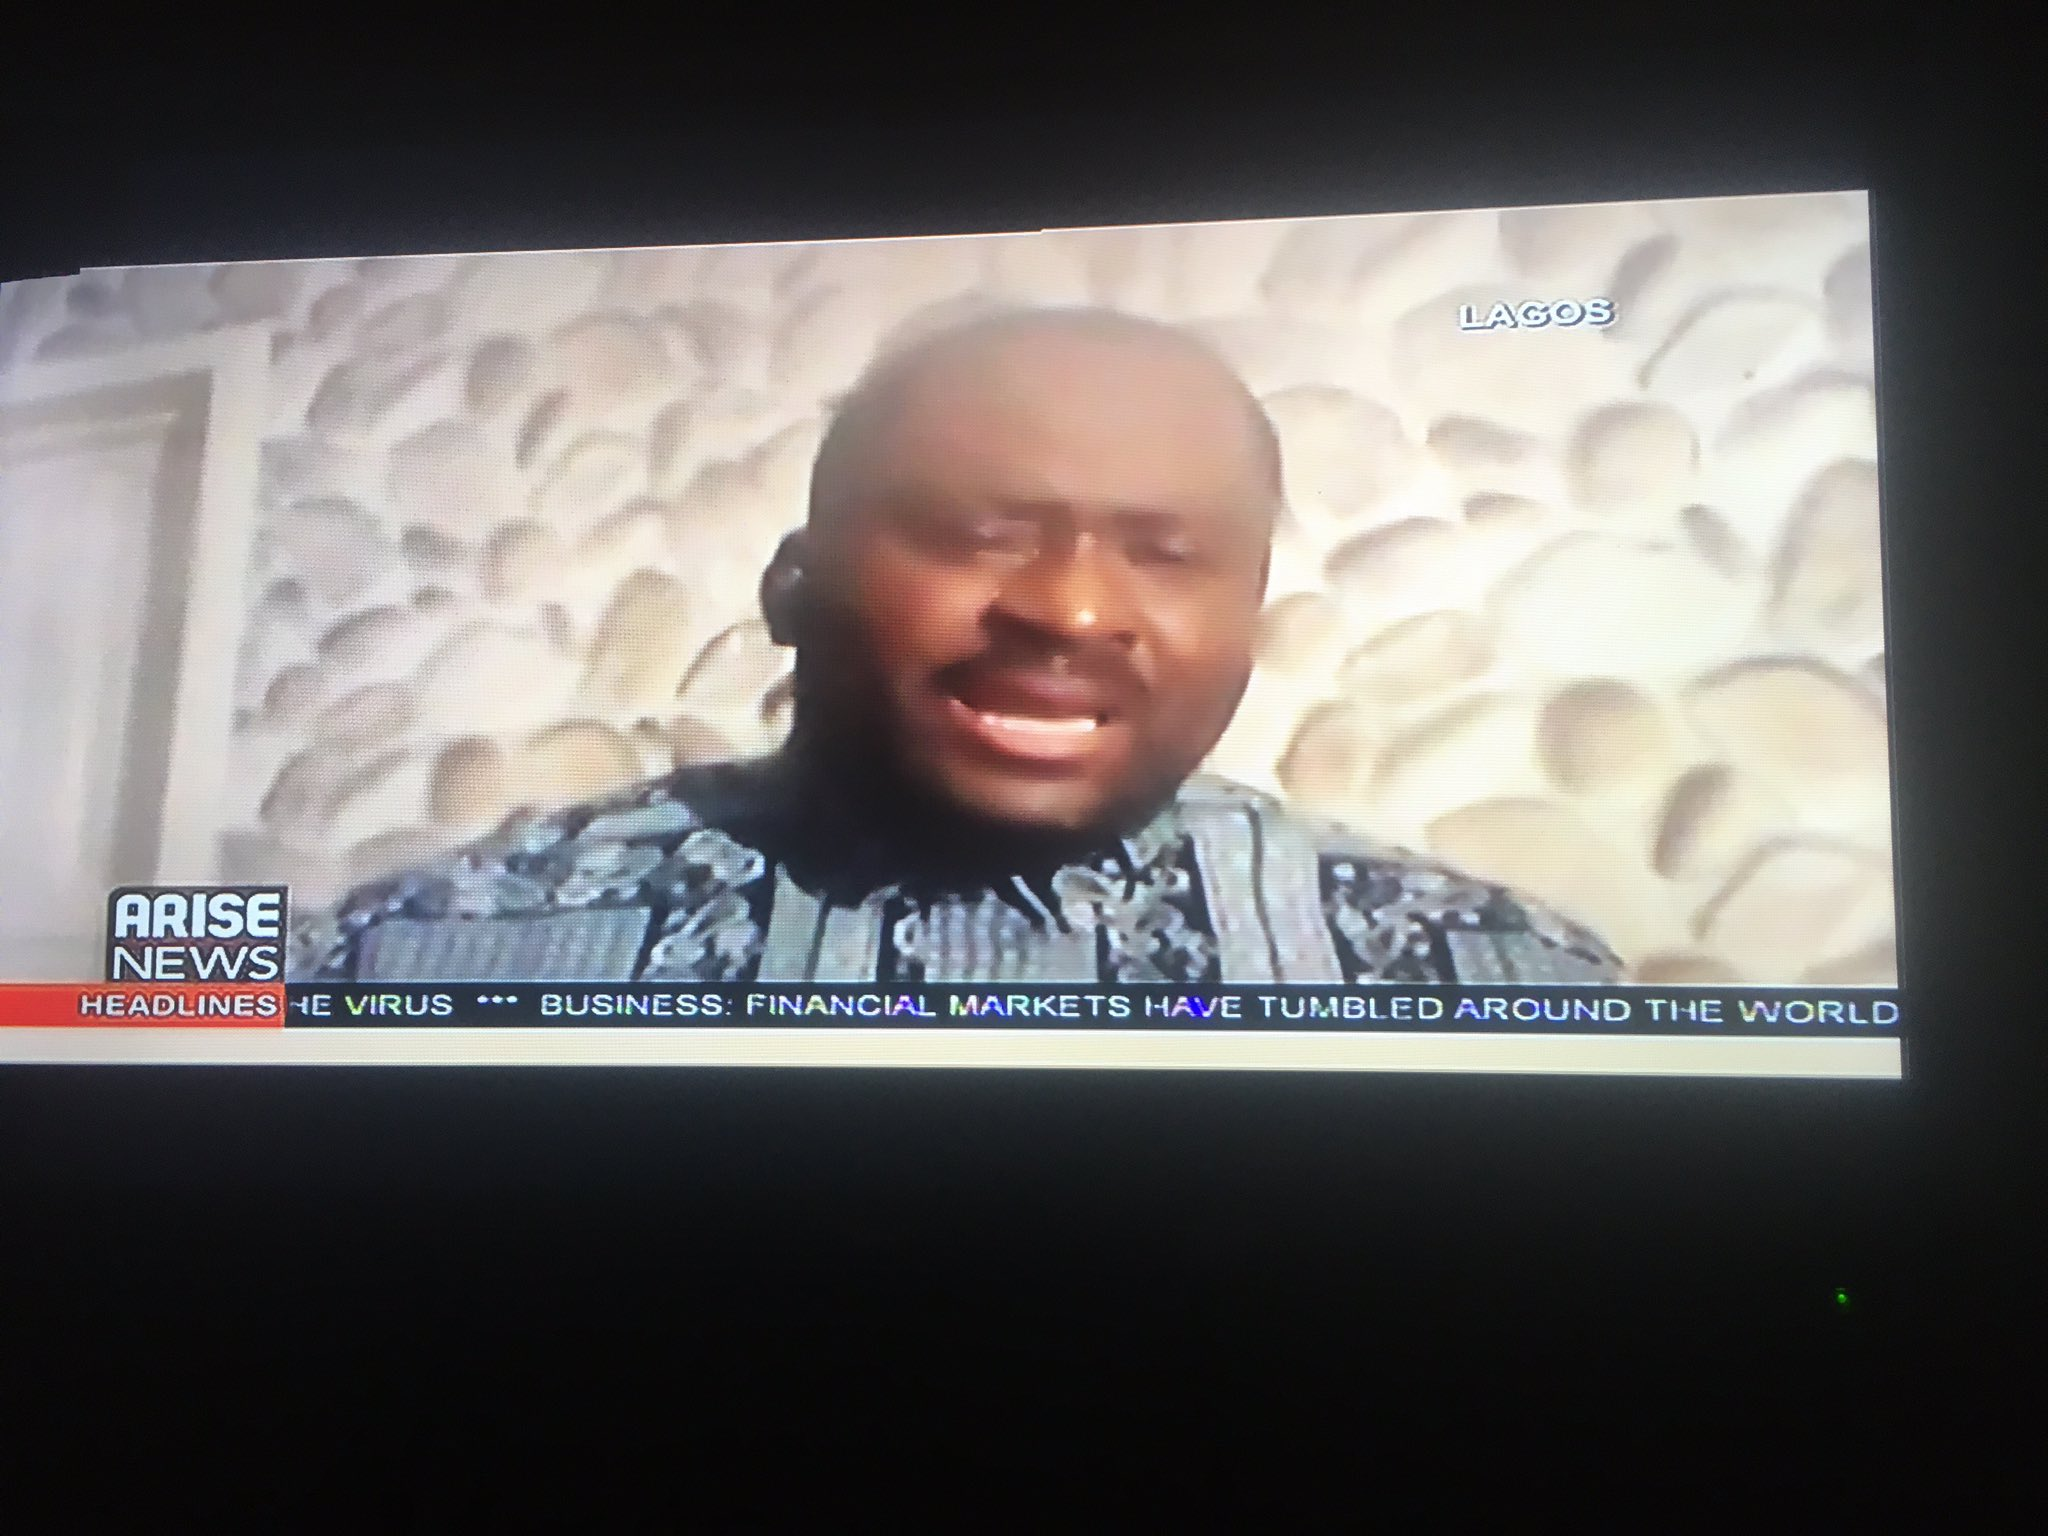 Desmond Elliot Cries on Arise Tv, youths dig up his past (video)